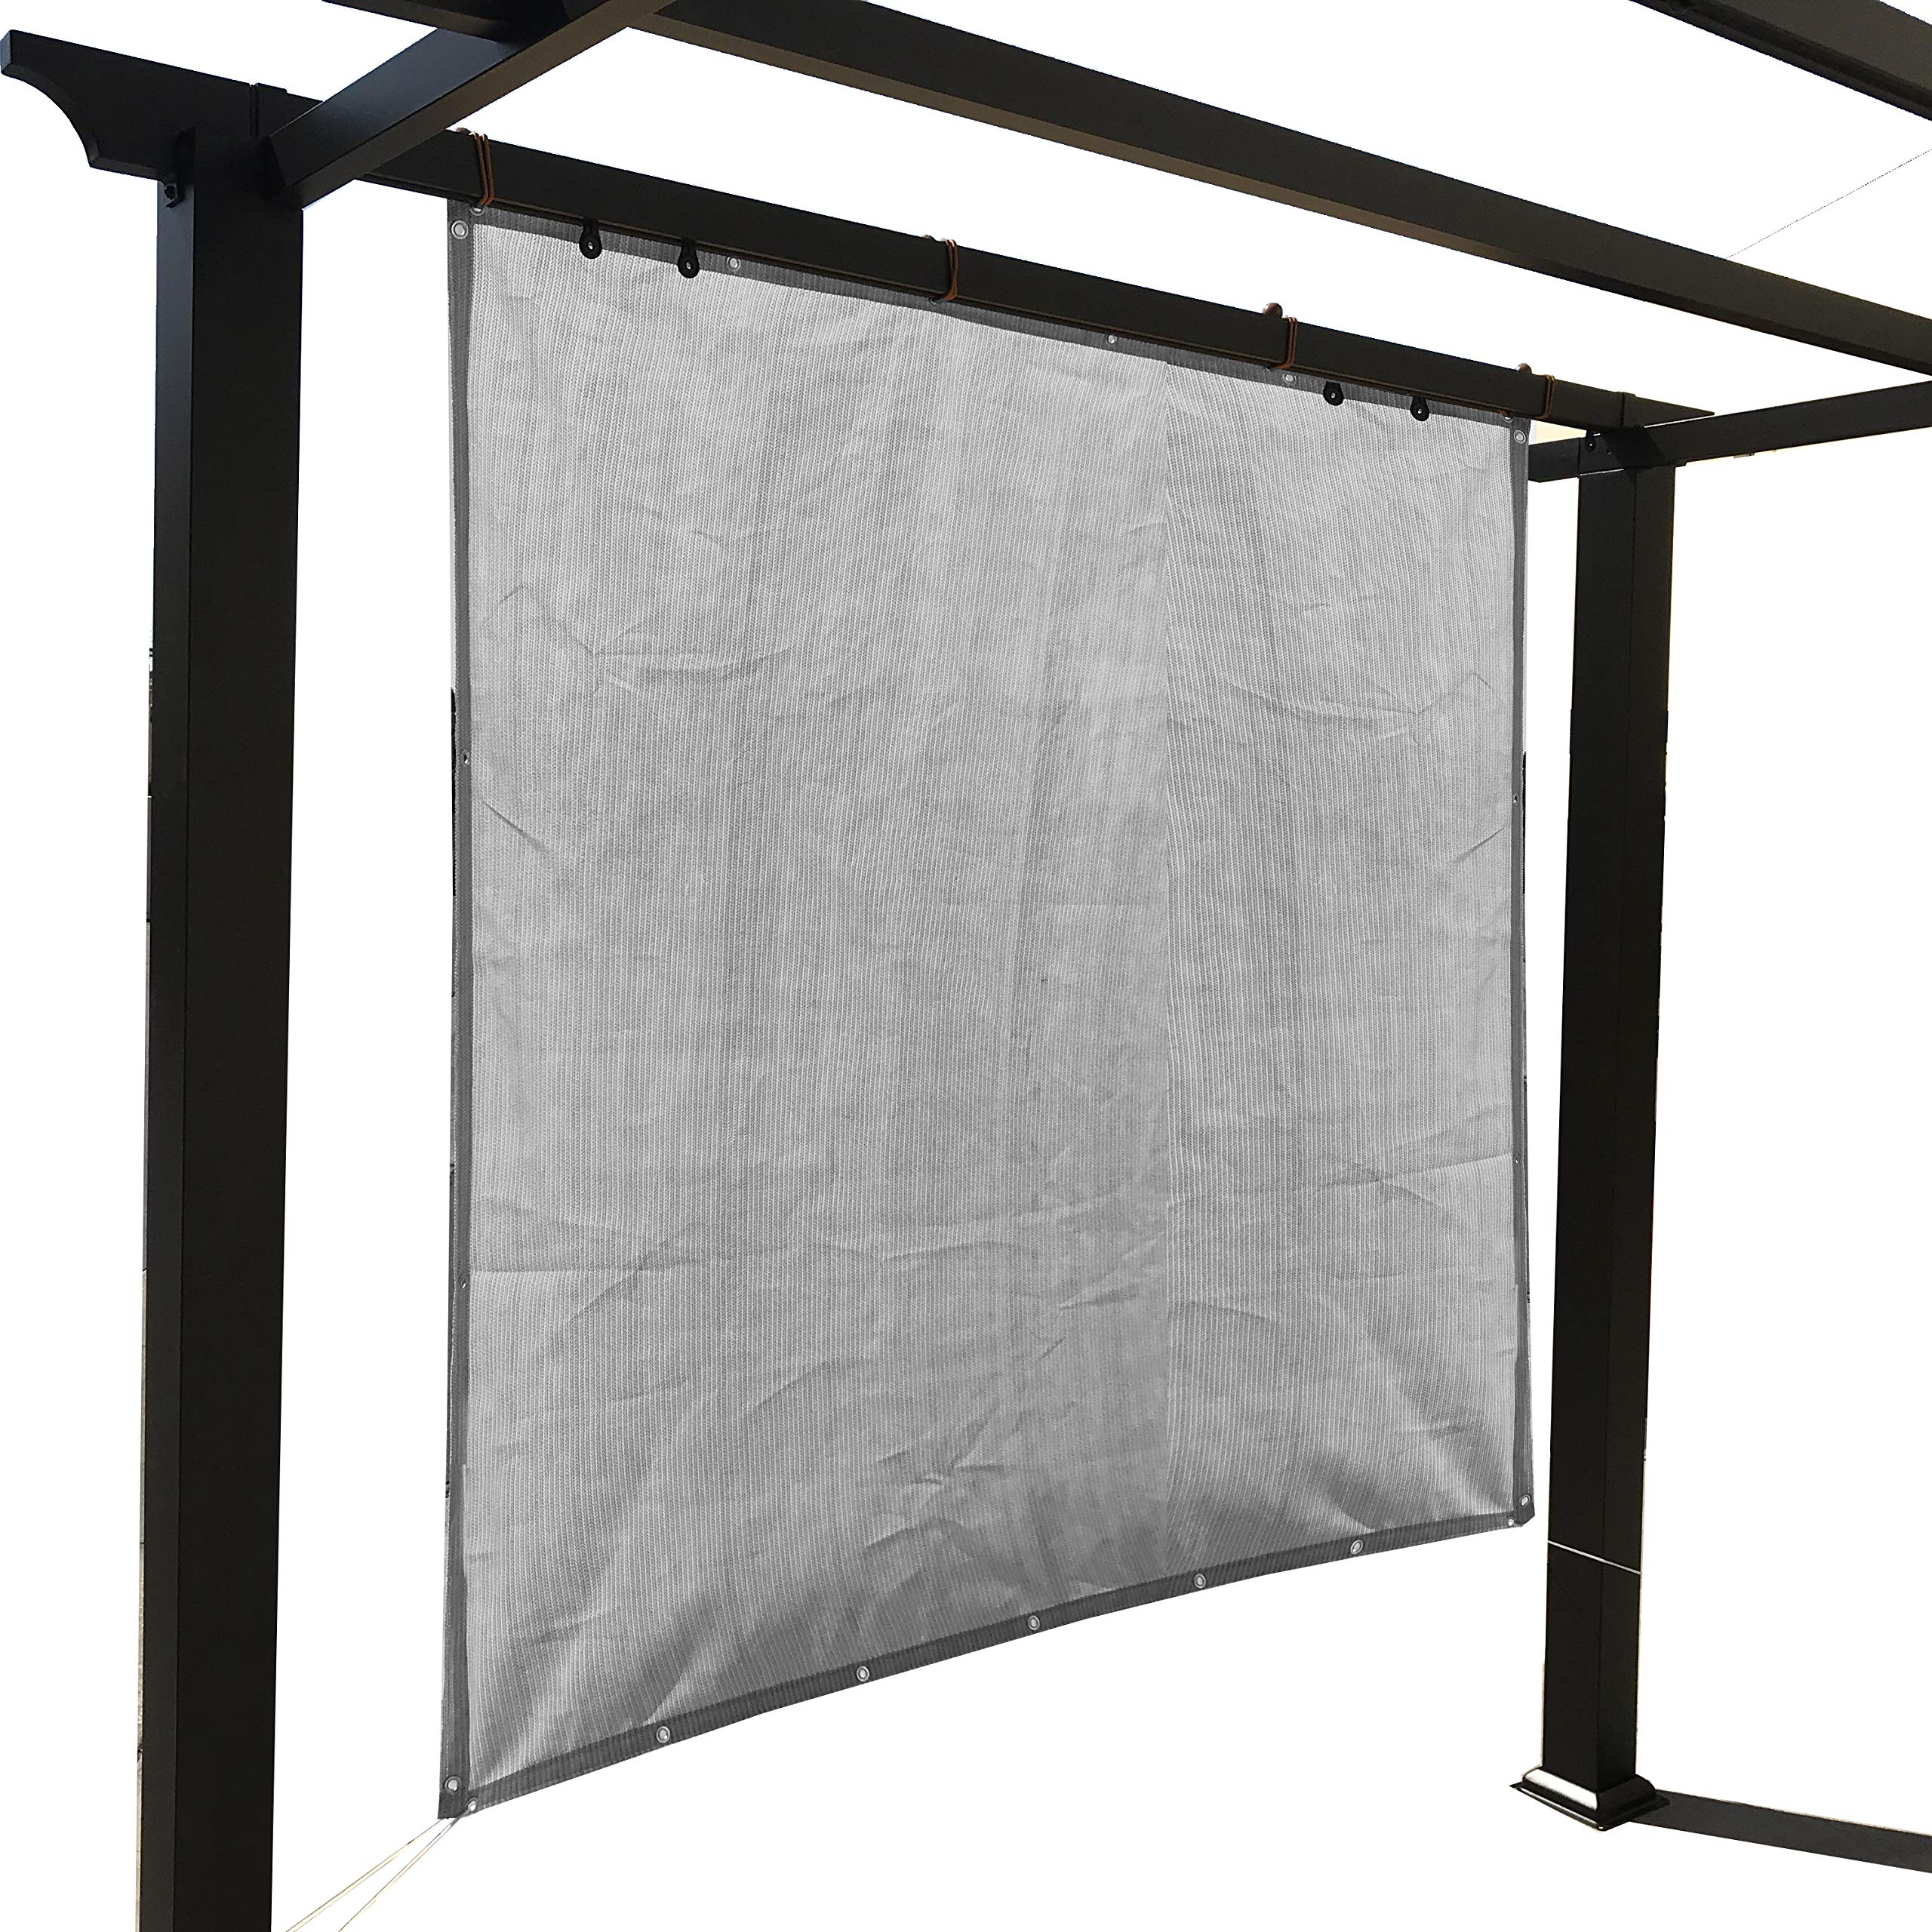 Alion Home Sun Shade Panel Privacy Screen with Grommets on 4 Sides for Outdoor, Patio, Awning, Window Cover, Pergola (10' x 12', Light Grey)